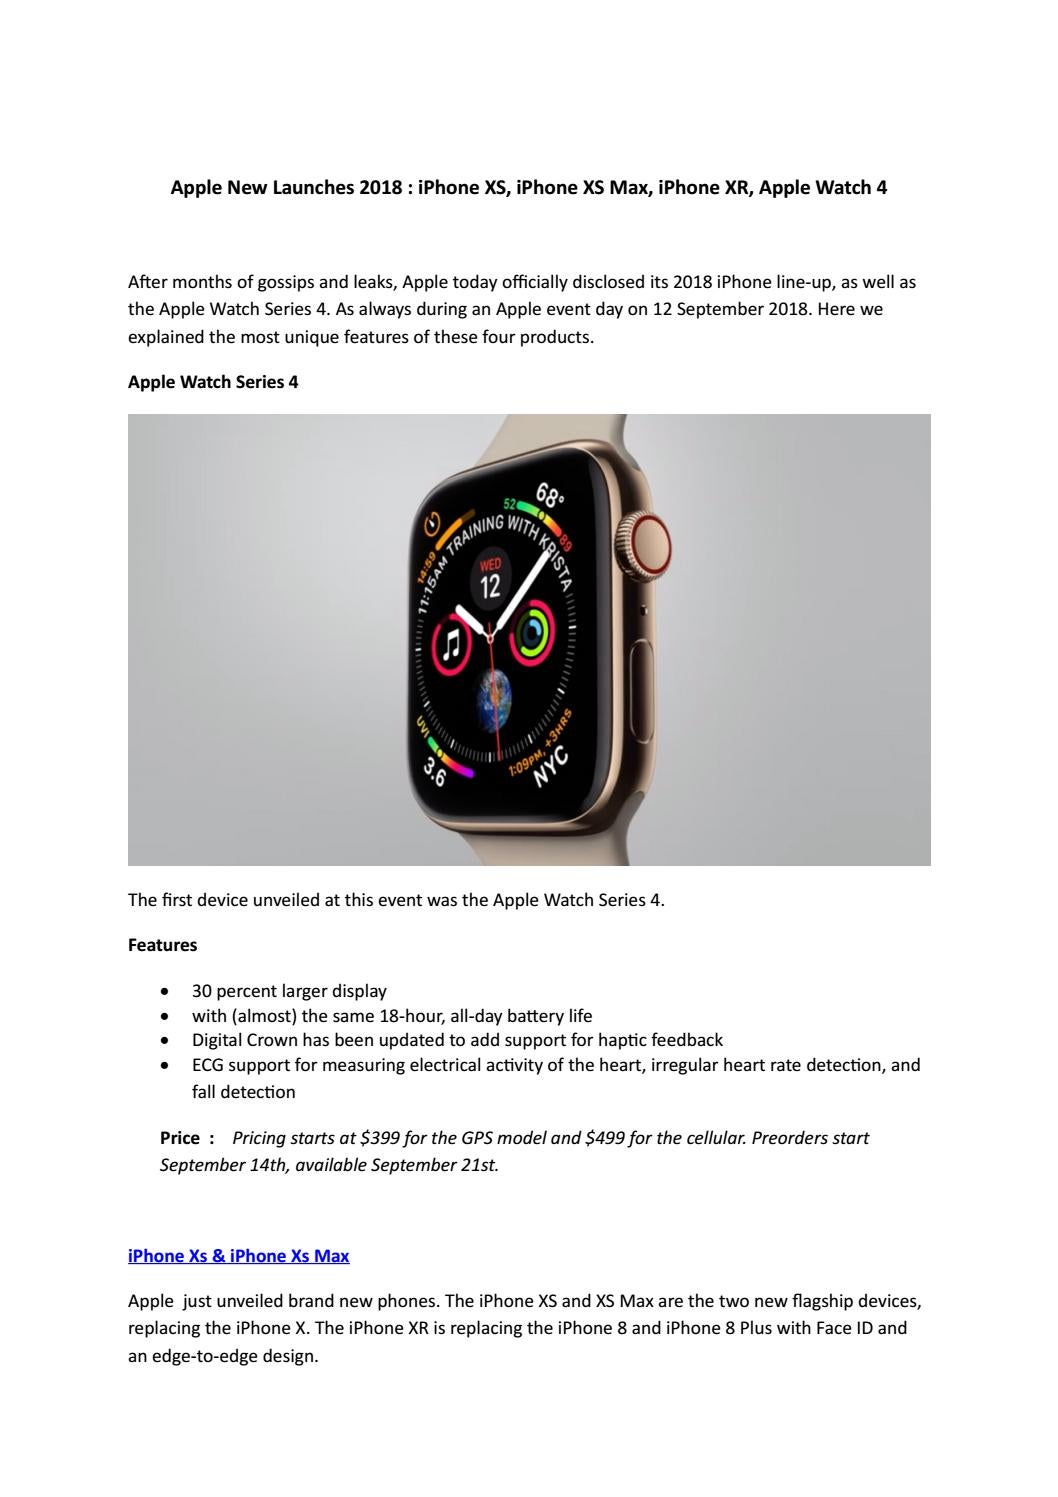 Apple New Launches 2018 by Jebelz UAE - issuu